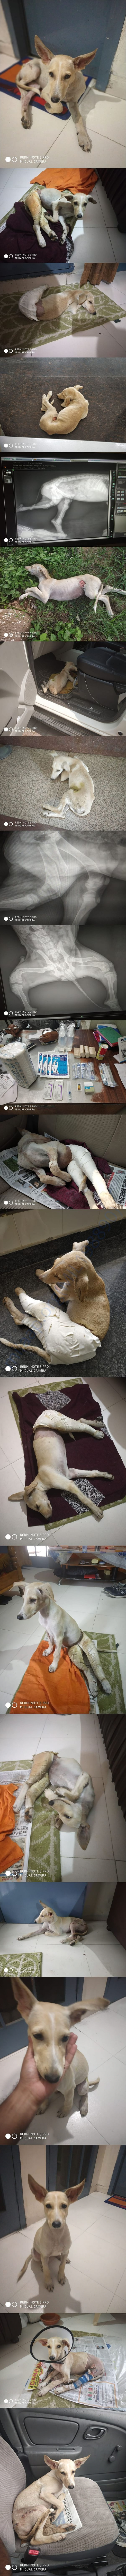 Lily rescued from IT Park and underwent a pinning surgery in GADVASU